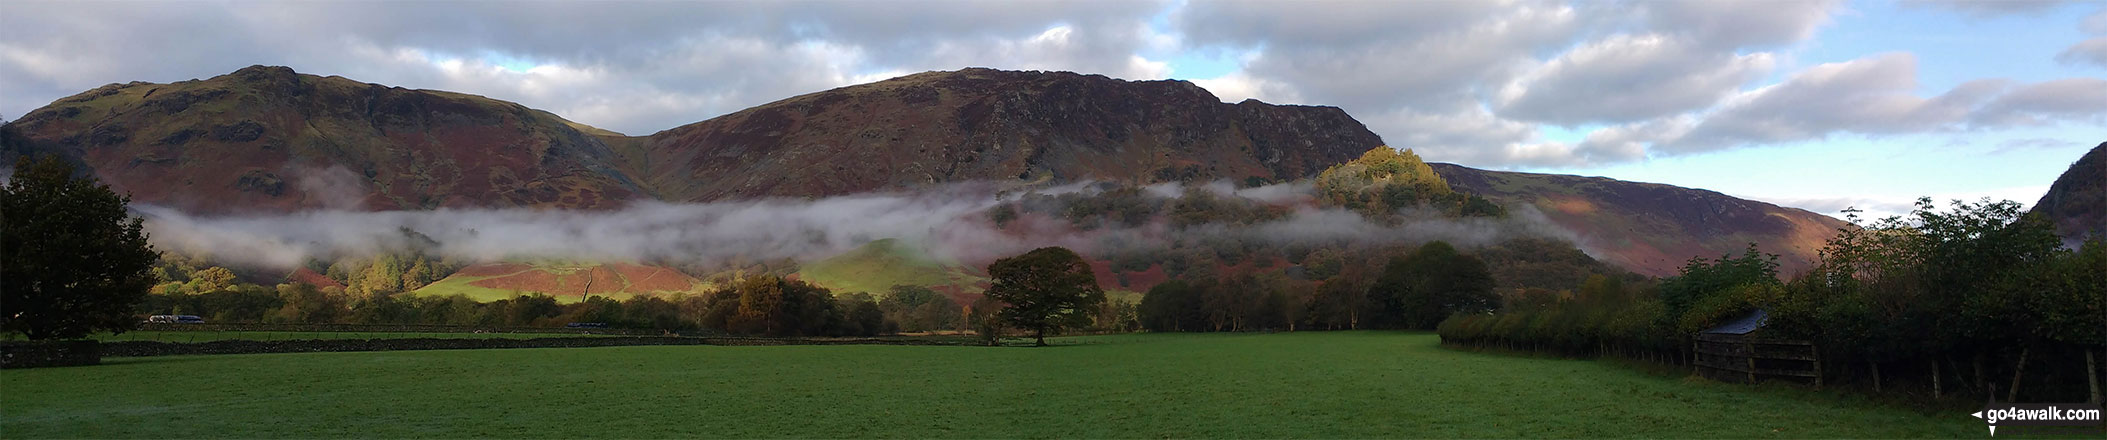 Early morning valley mist below Dale Head (Newlands) and High Spy, Maiden Moor & Cat Bells (Catbells) with the summit of Castle Crag (front right) lit by a ray of sunshine from Rosthwaite